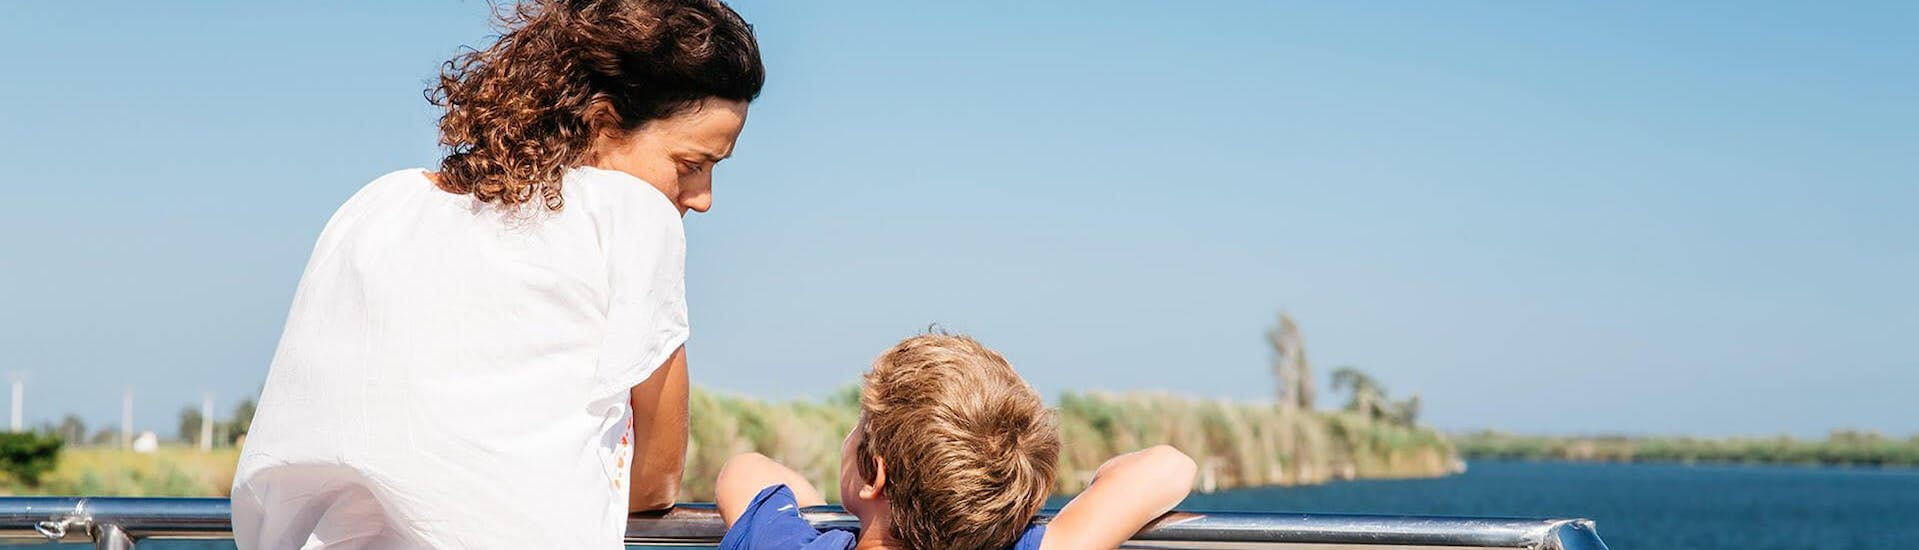 A mother and her son enjoy the great view during a Boat Tour at the Ebro Delta River organized by Estació Nàutica Costa Daurada.